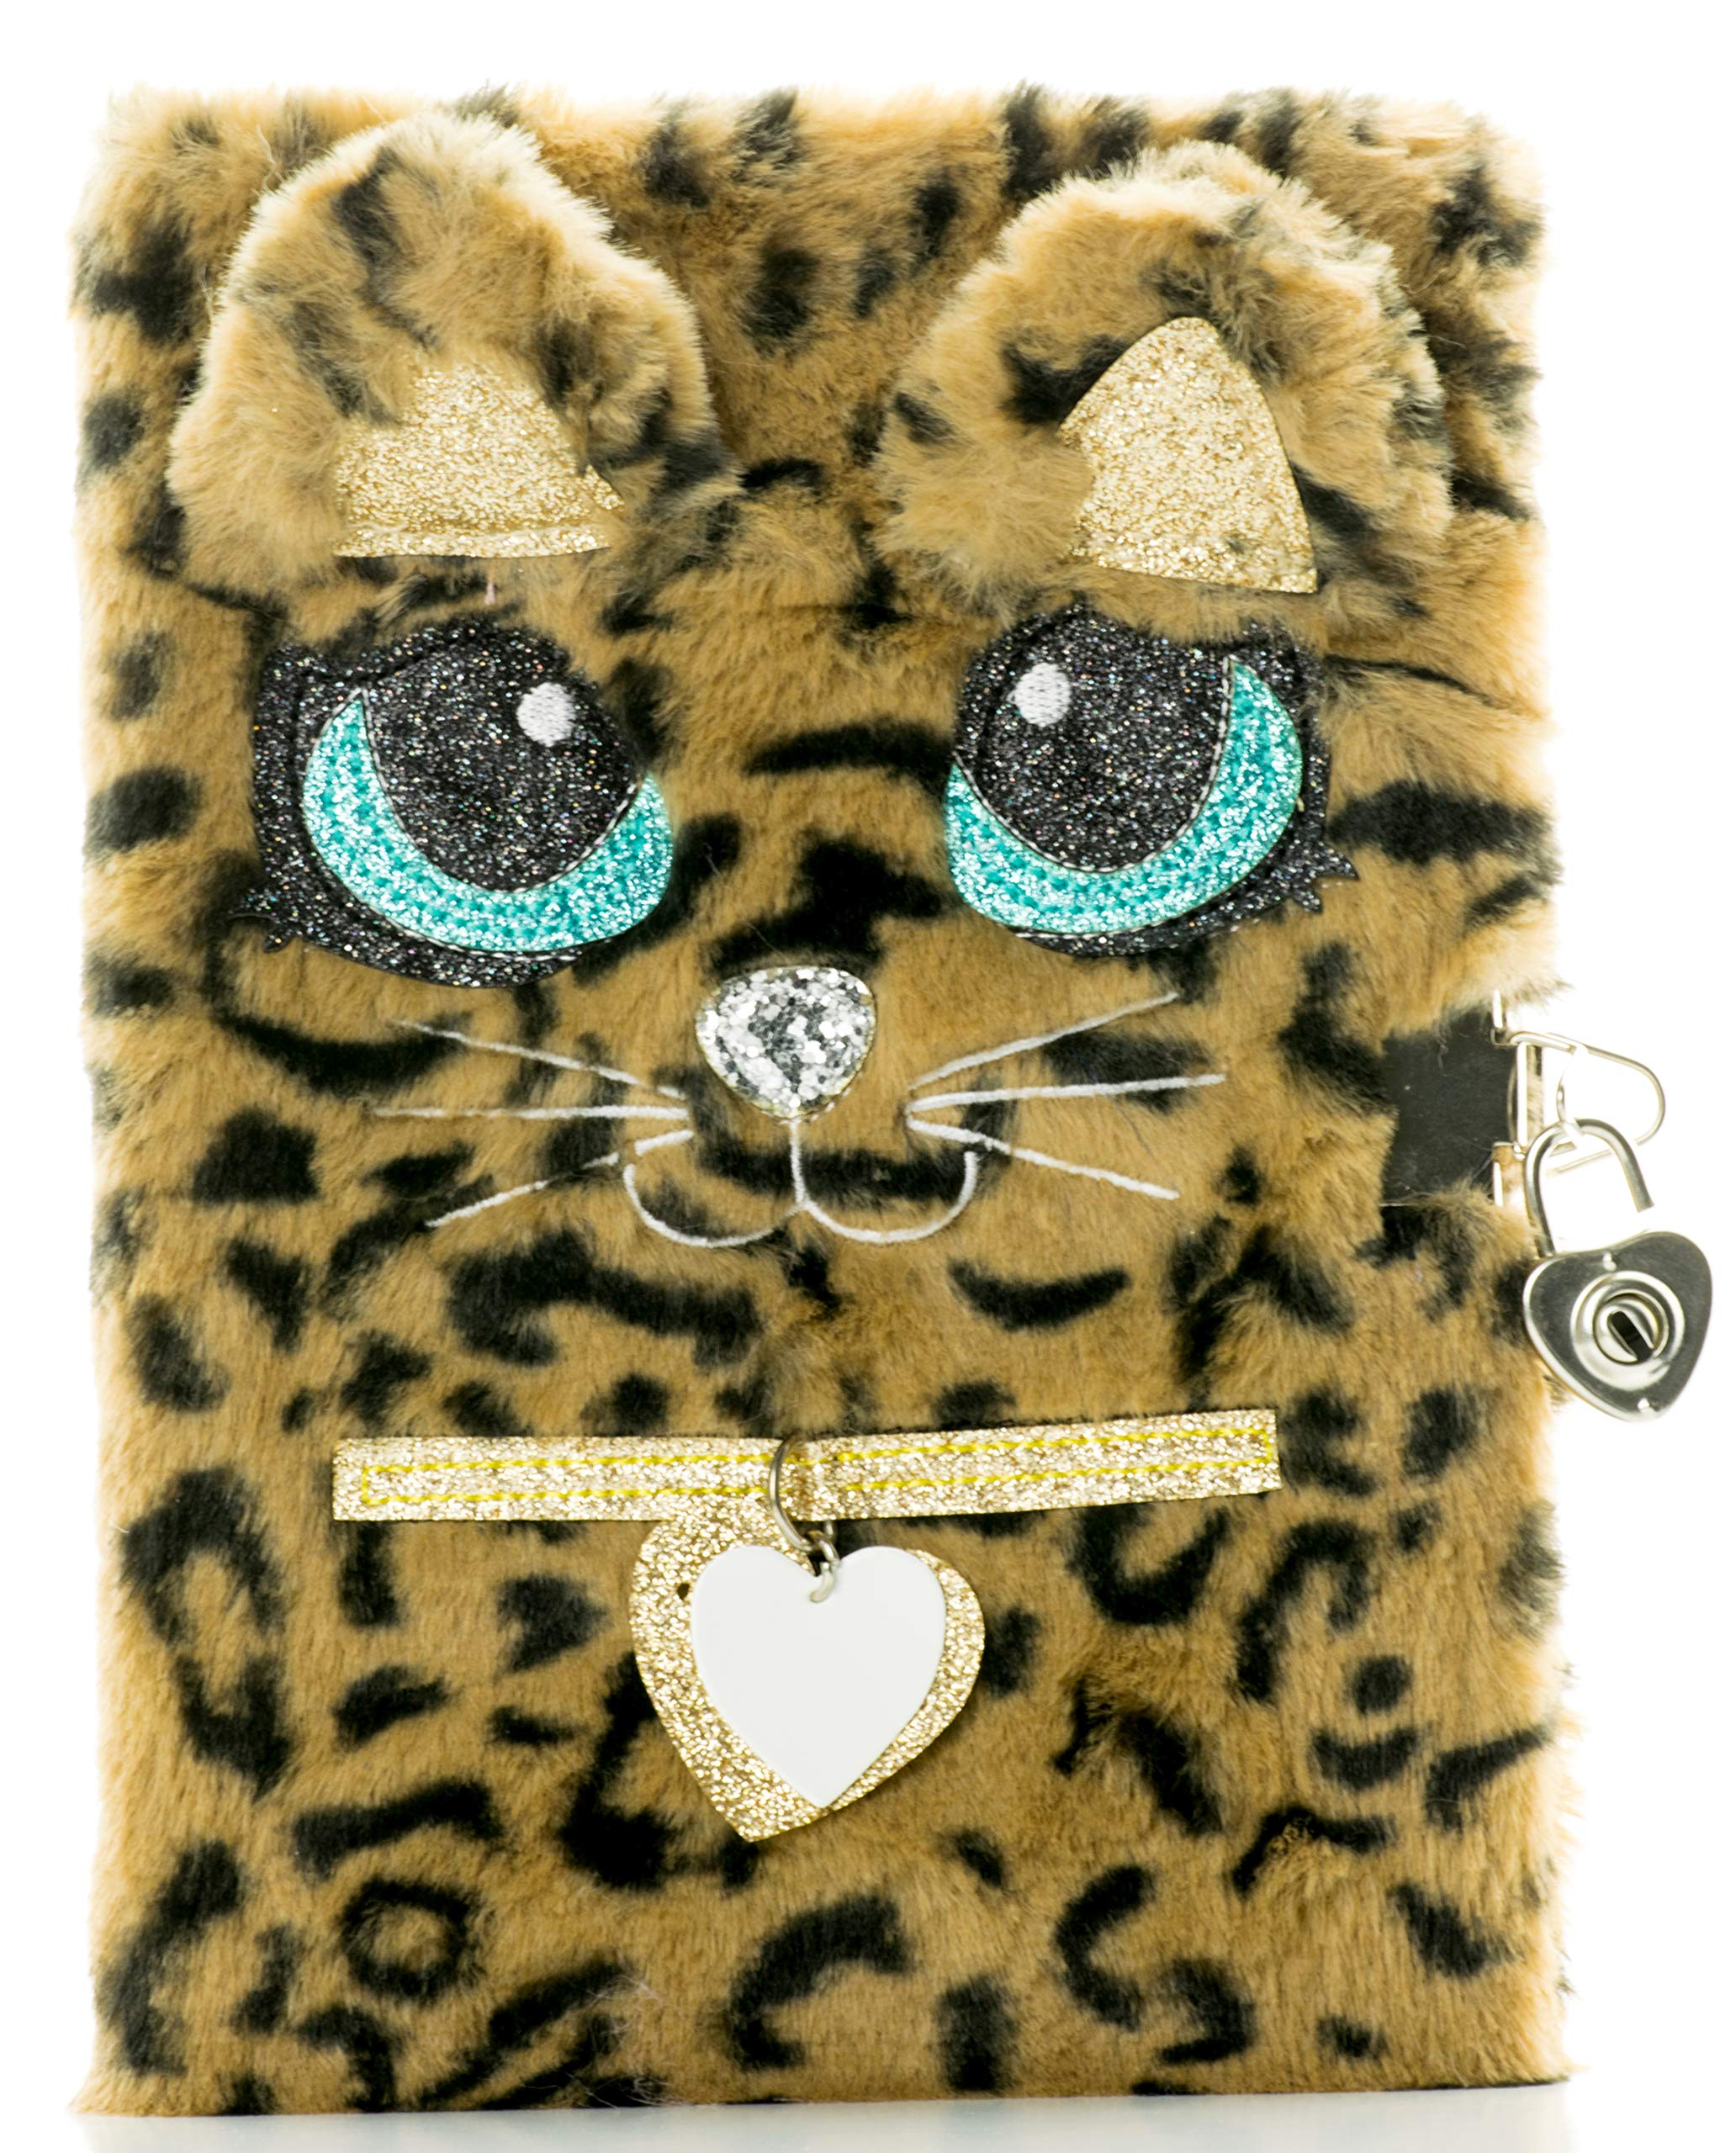 Busy Kid Plush Diary with Lock for Girls Glitter Kitty Notebook for Kids (Leopard) by Busy Kid